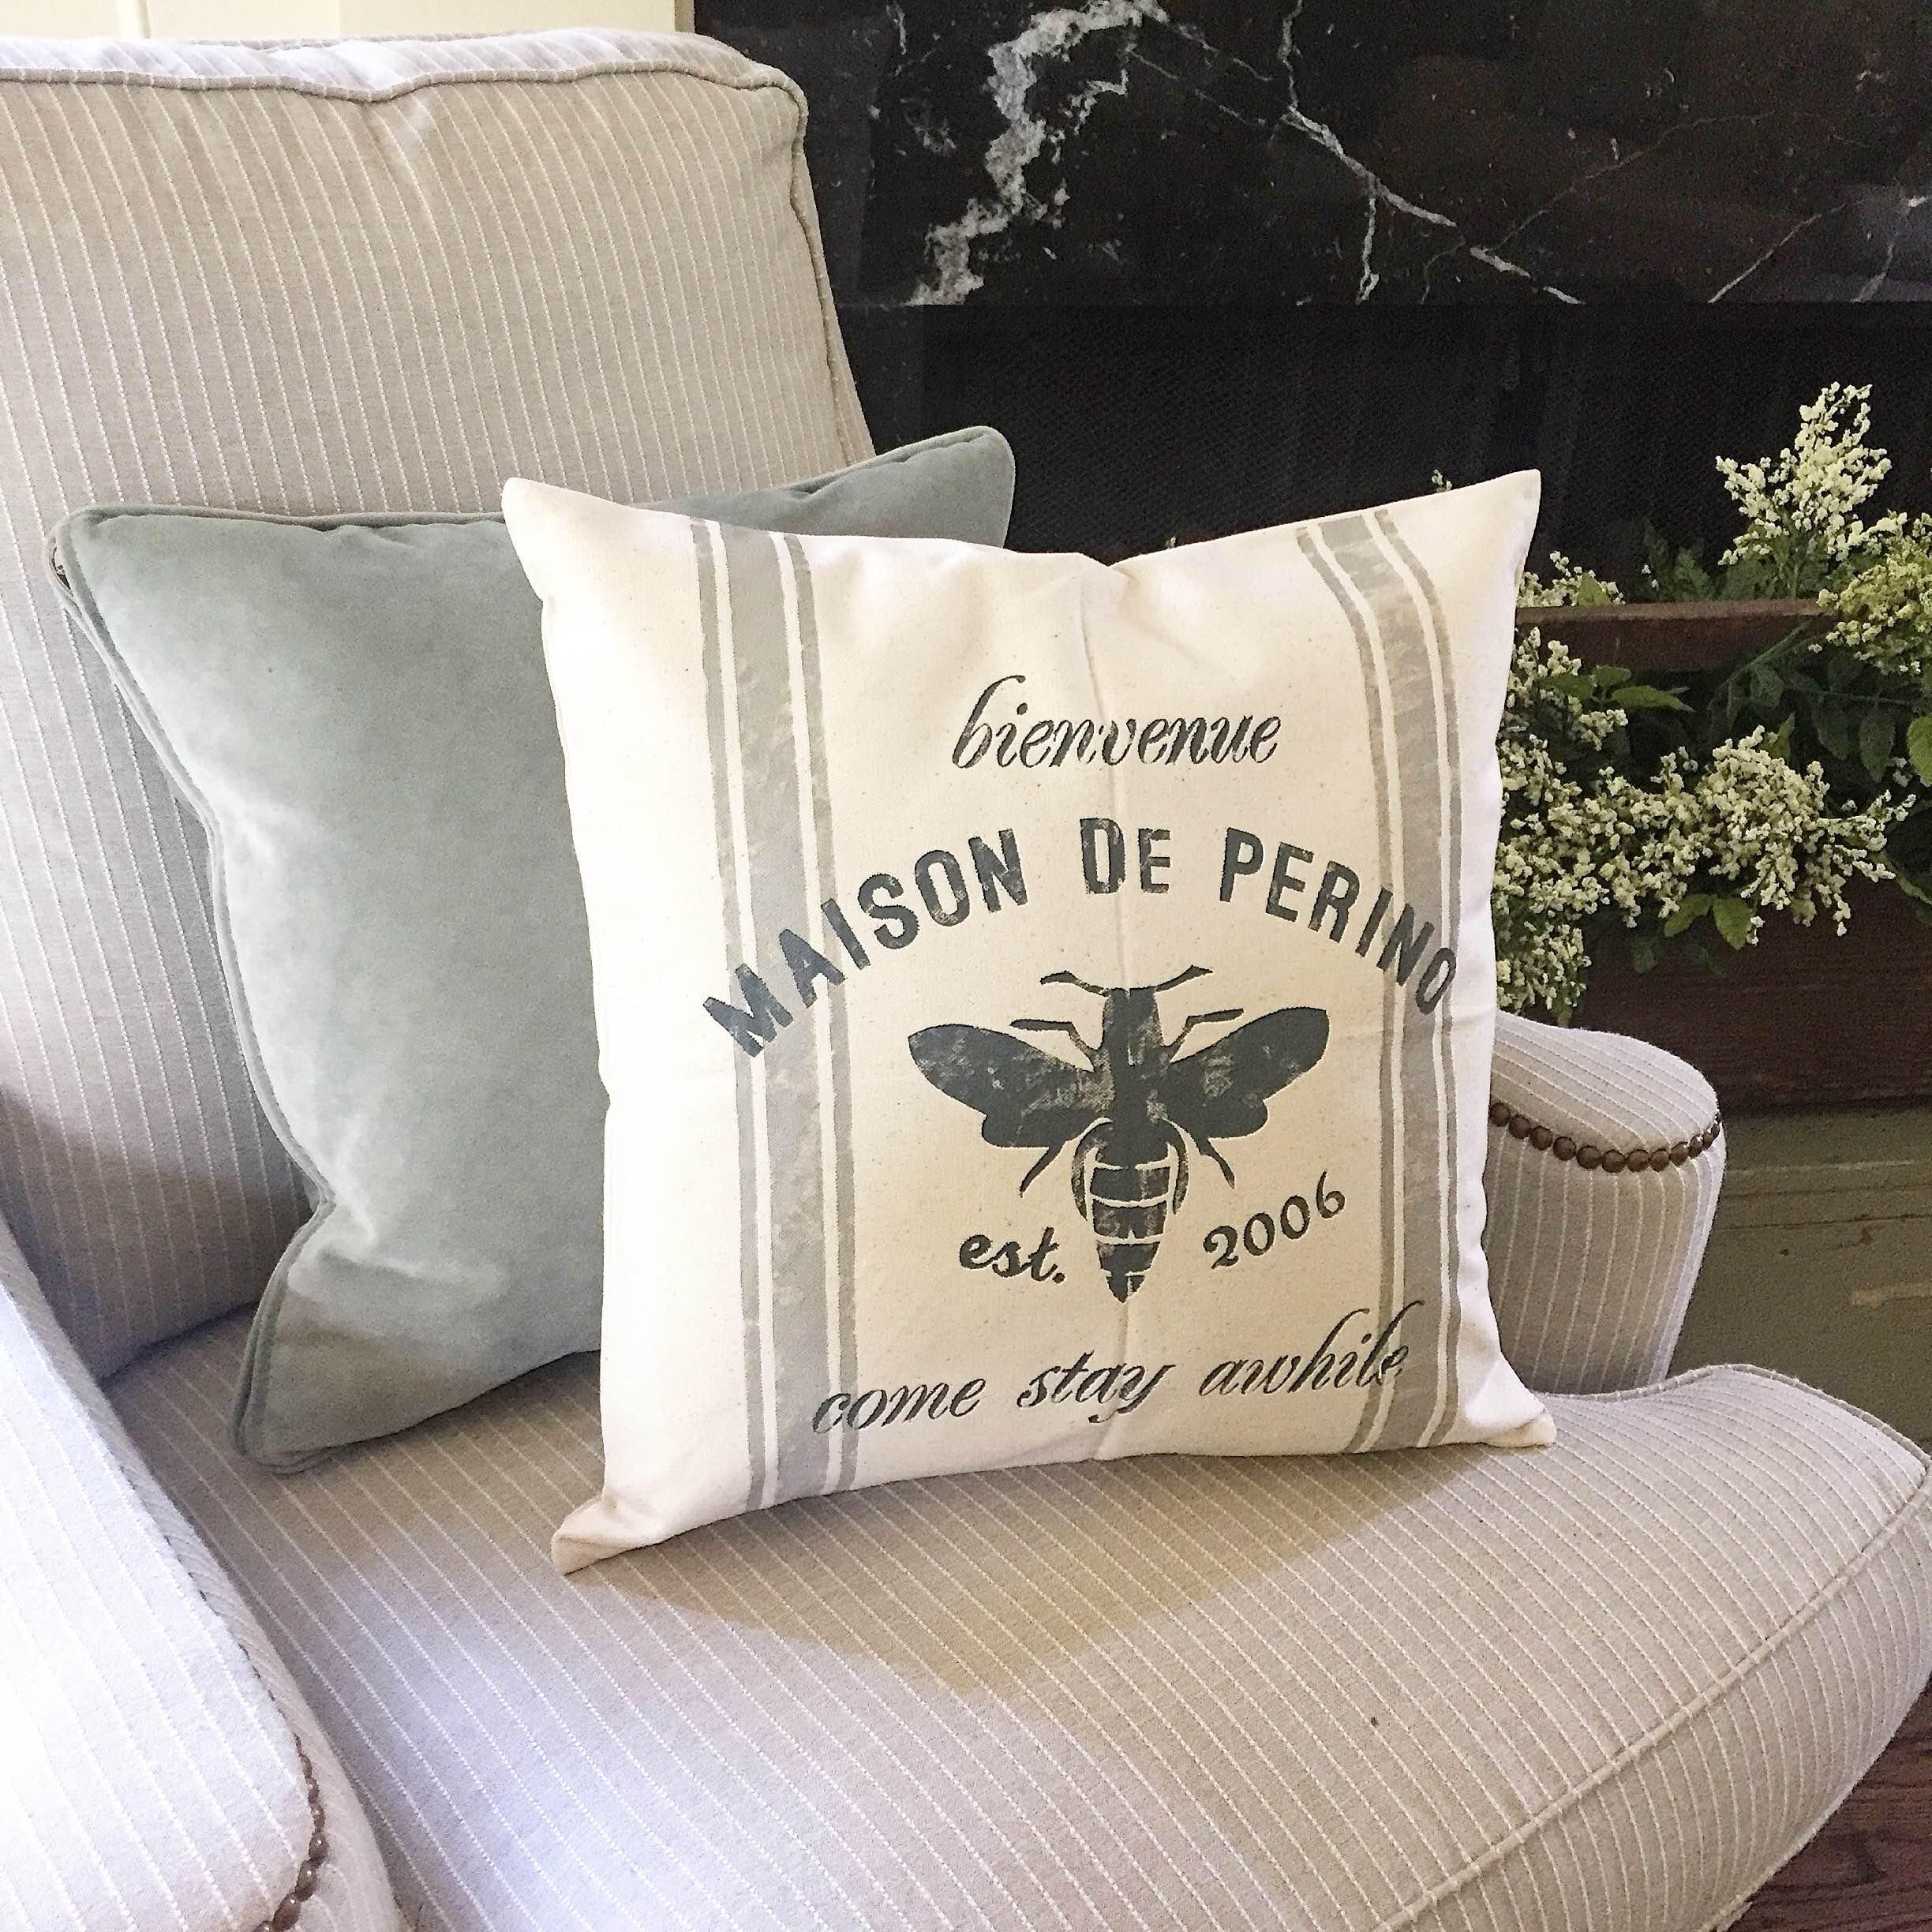 french come stay awhile pillow